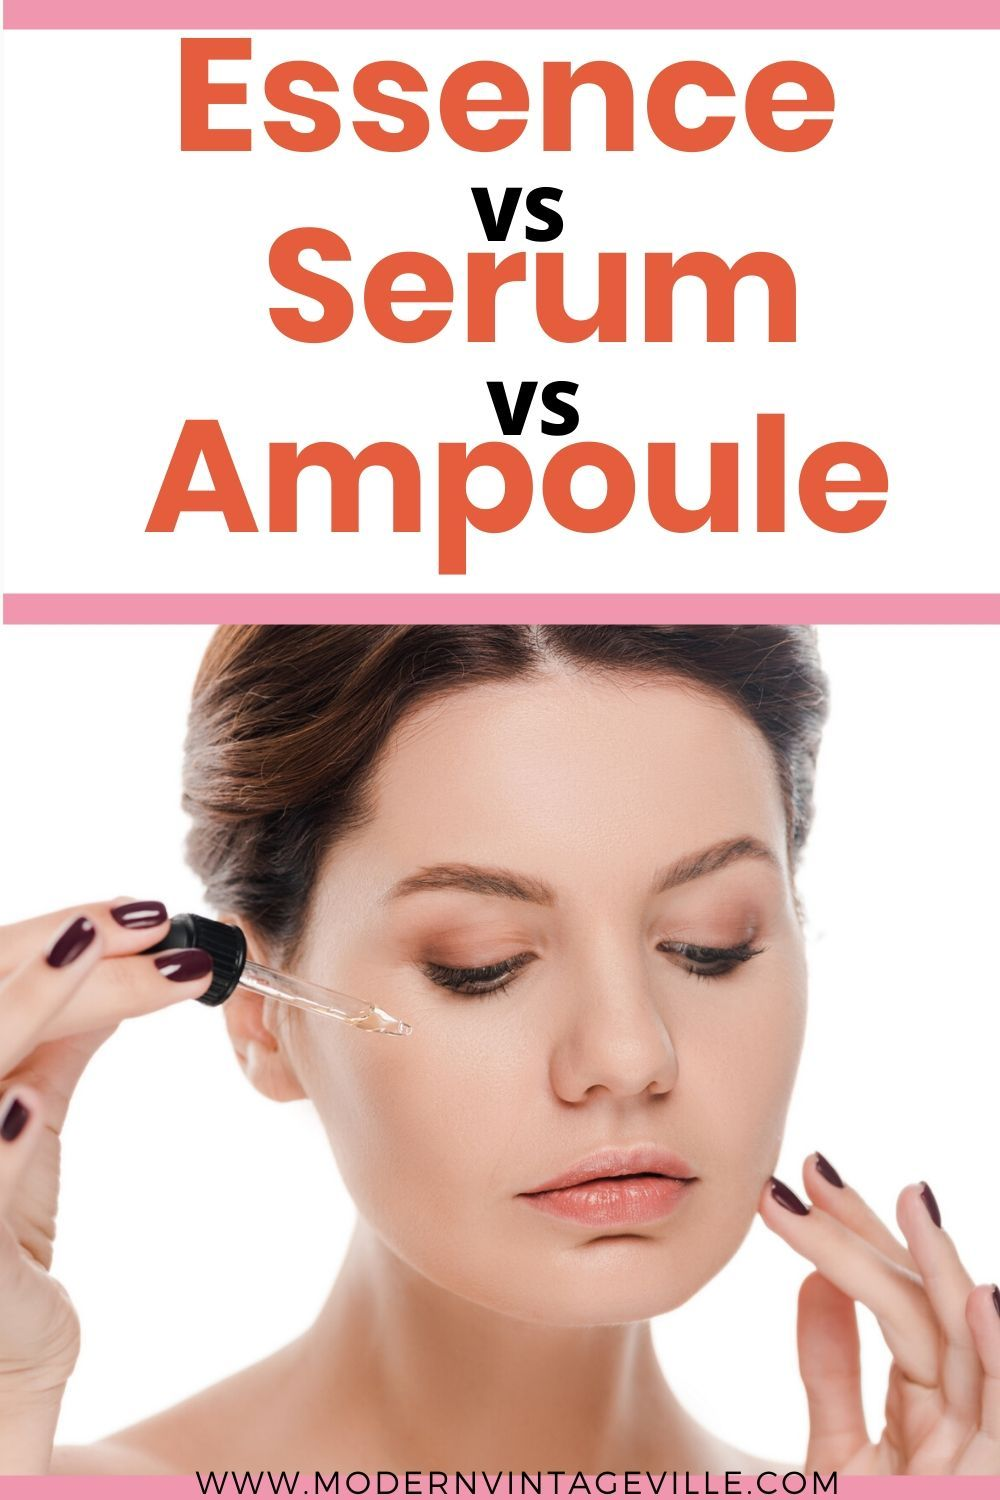 Difference Between Essence Serum And Ampoule Skin Essence Best Skin Care Routine Skin Care Routine